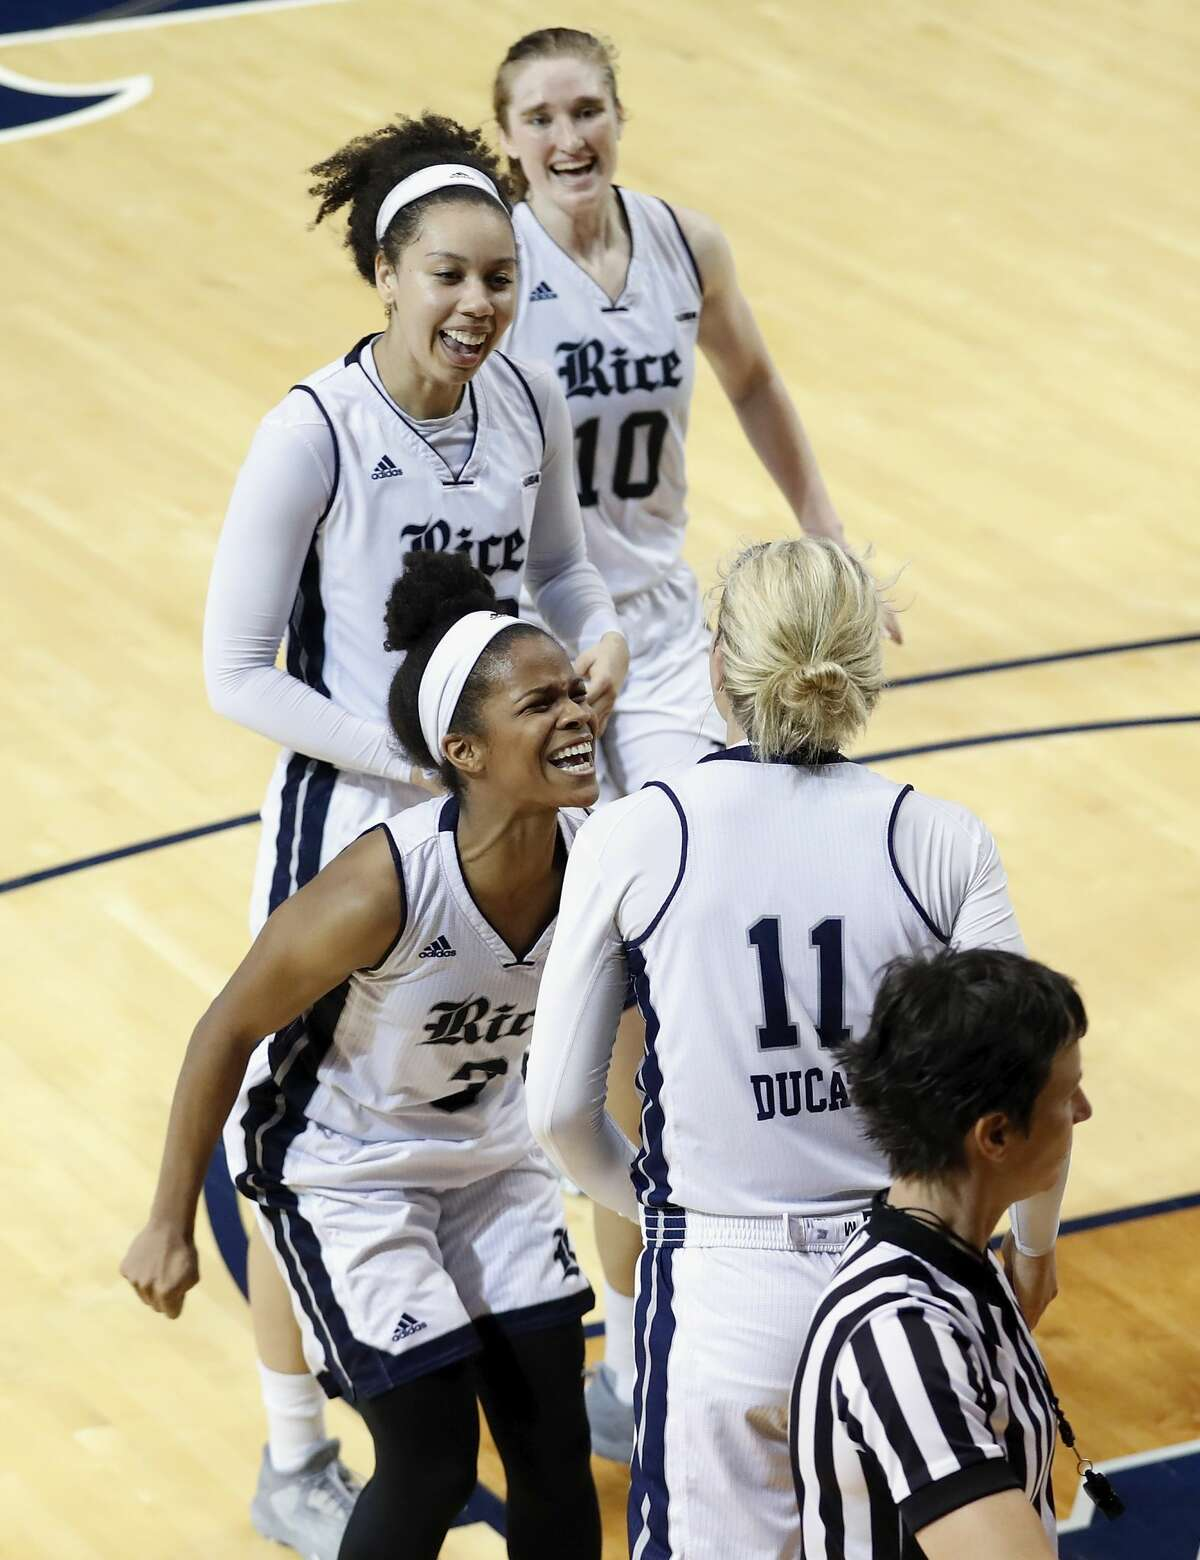 Rice Owls guard Maya Hawkins (3) celebrates with Rice Owls forward Lexie Ducat (11) after drawing a foul on a layup in the second half during the Women's Basketball Invitational Championship Game between the UNC-Greensboro Spartans and the Rice Owls at Tudor Field House in Houston, TX on Sunday, March 26, 2017.